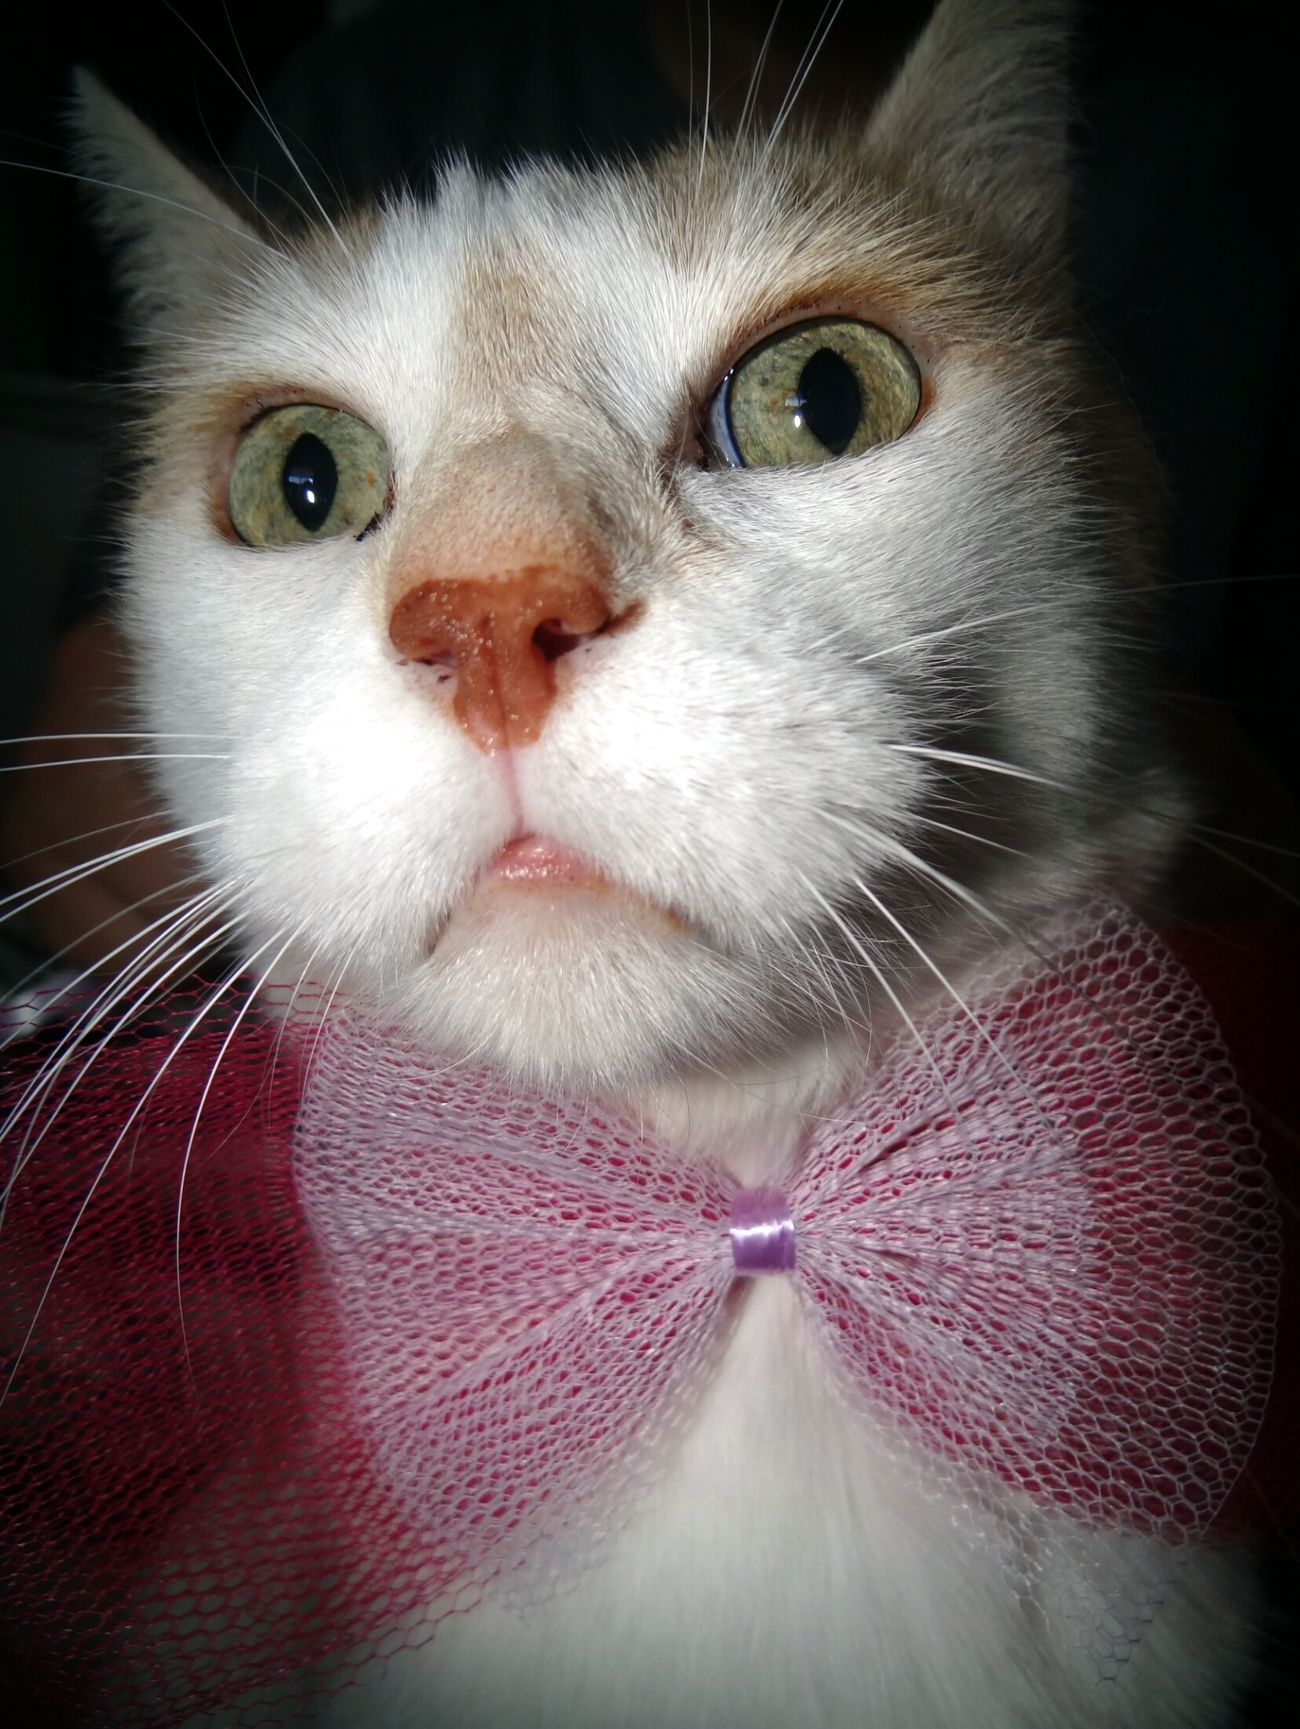 Bonsoir ! 😺 Good evening ! Easter Ready Cat Animals Animal Funny Mister Class Cute Cute Pets Cats Cat♡ Kitty Cat Lovers House Traveling Evening Hello World Lol :) Gentlemen Taking Photos France Chat Cheese! Enjoying Life